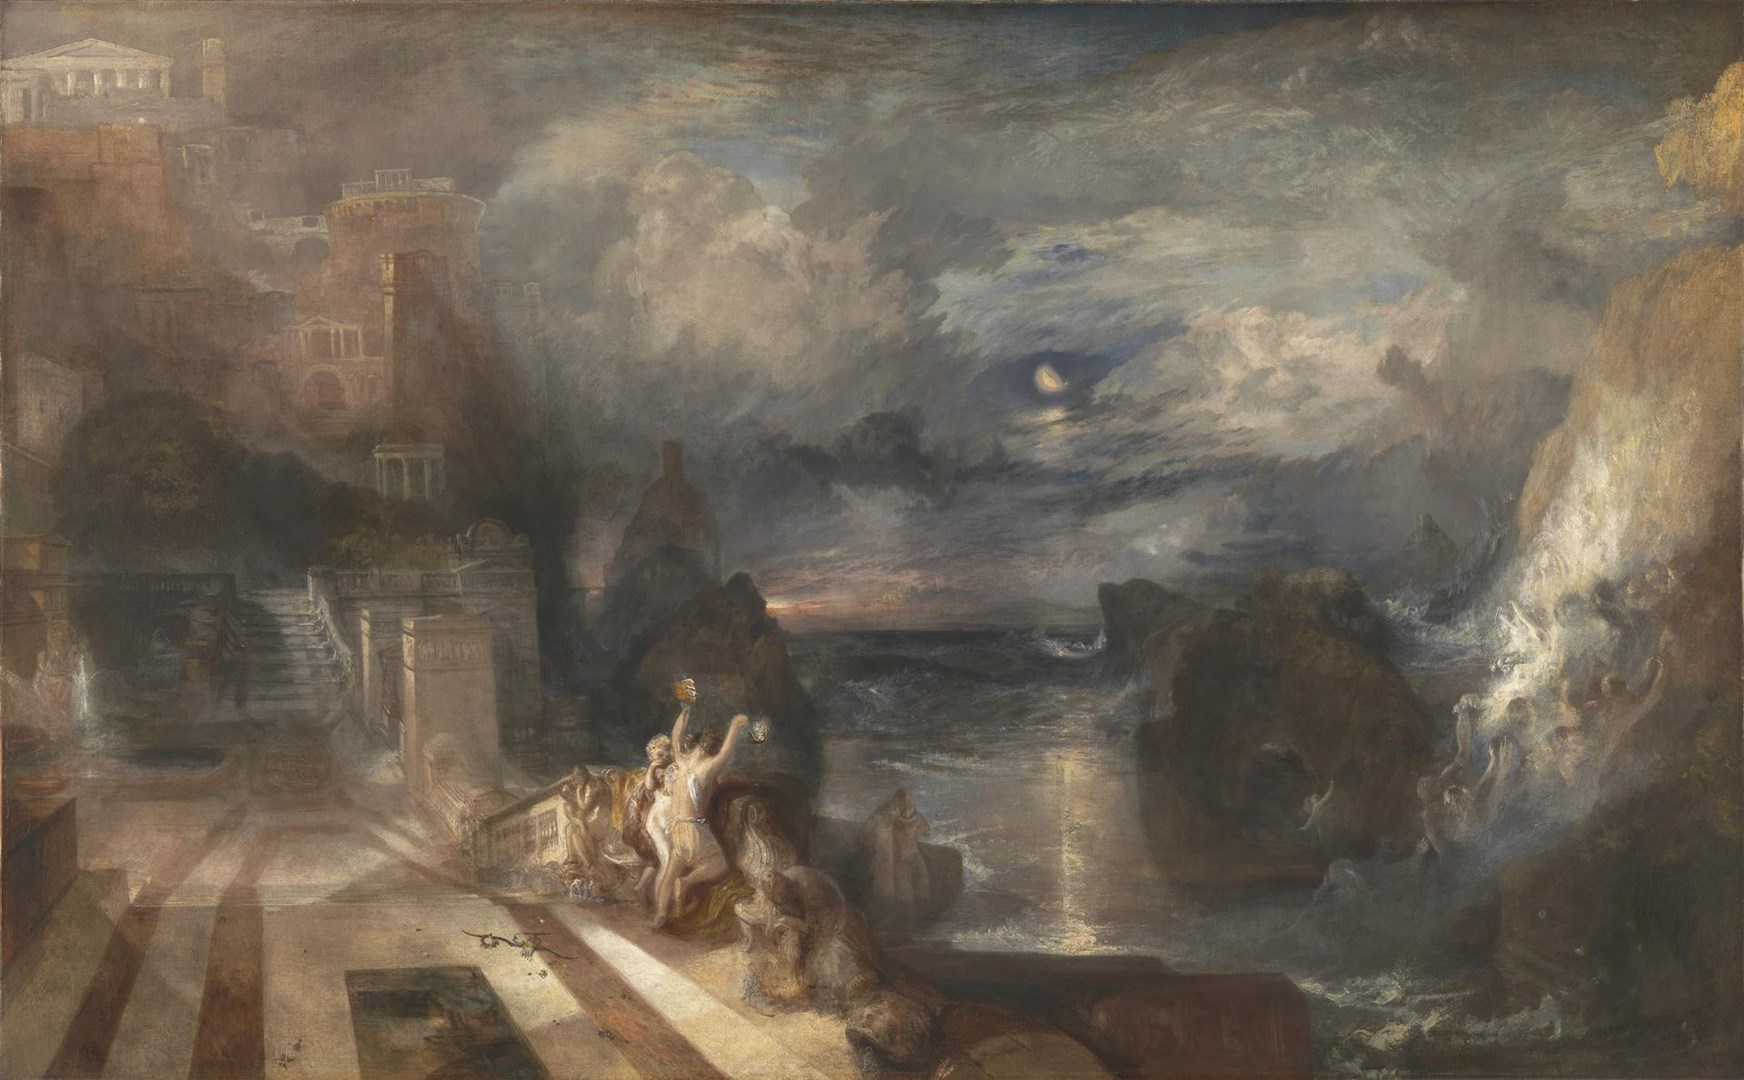 The Parting of Hero and Leander by Joseph Mallord William Turner